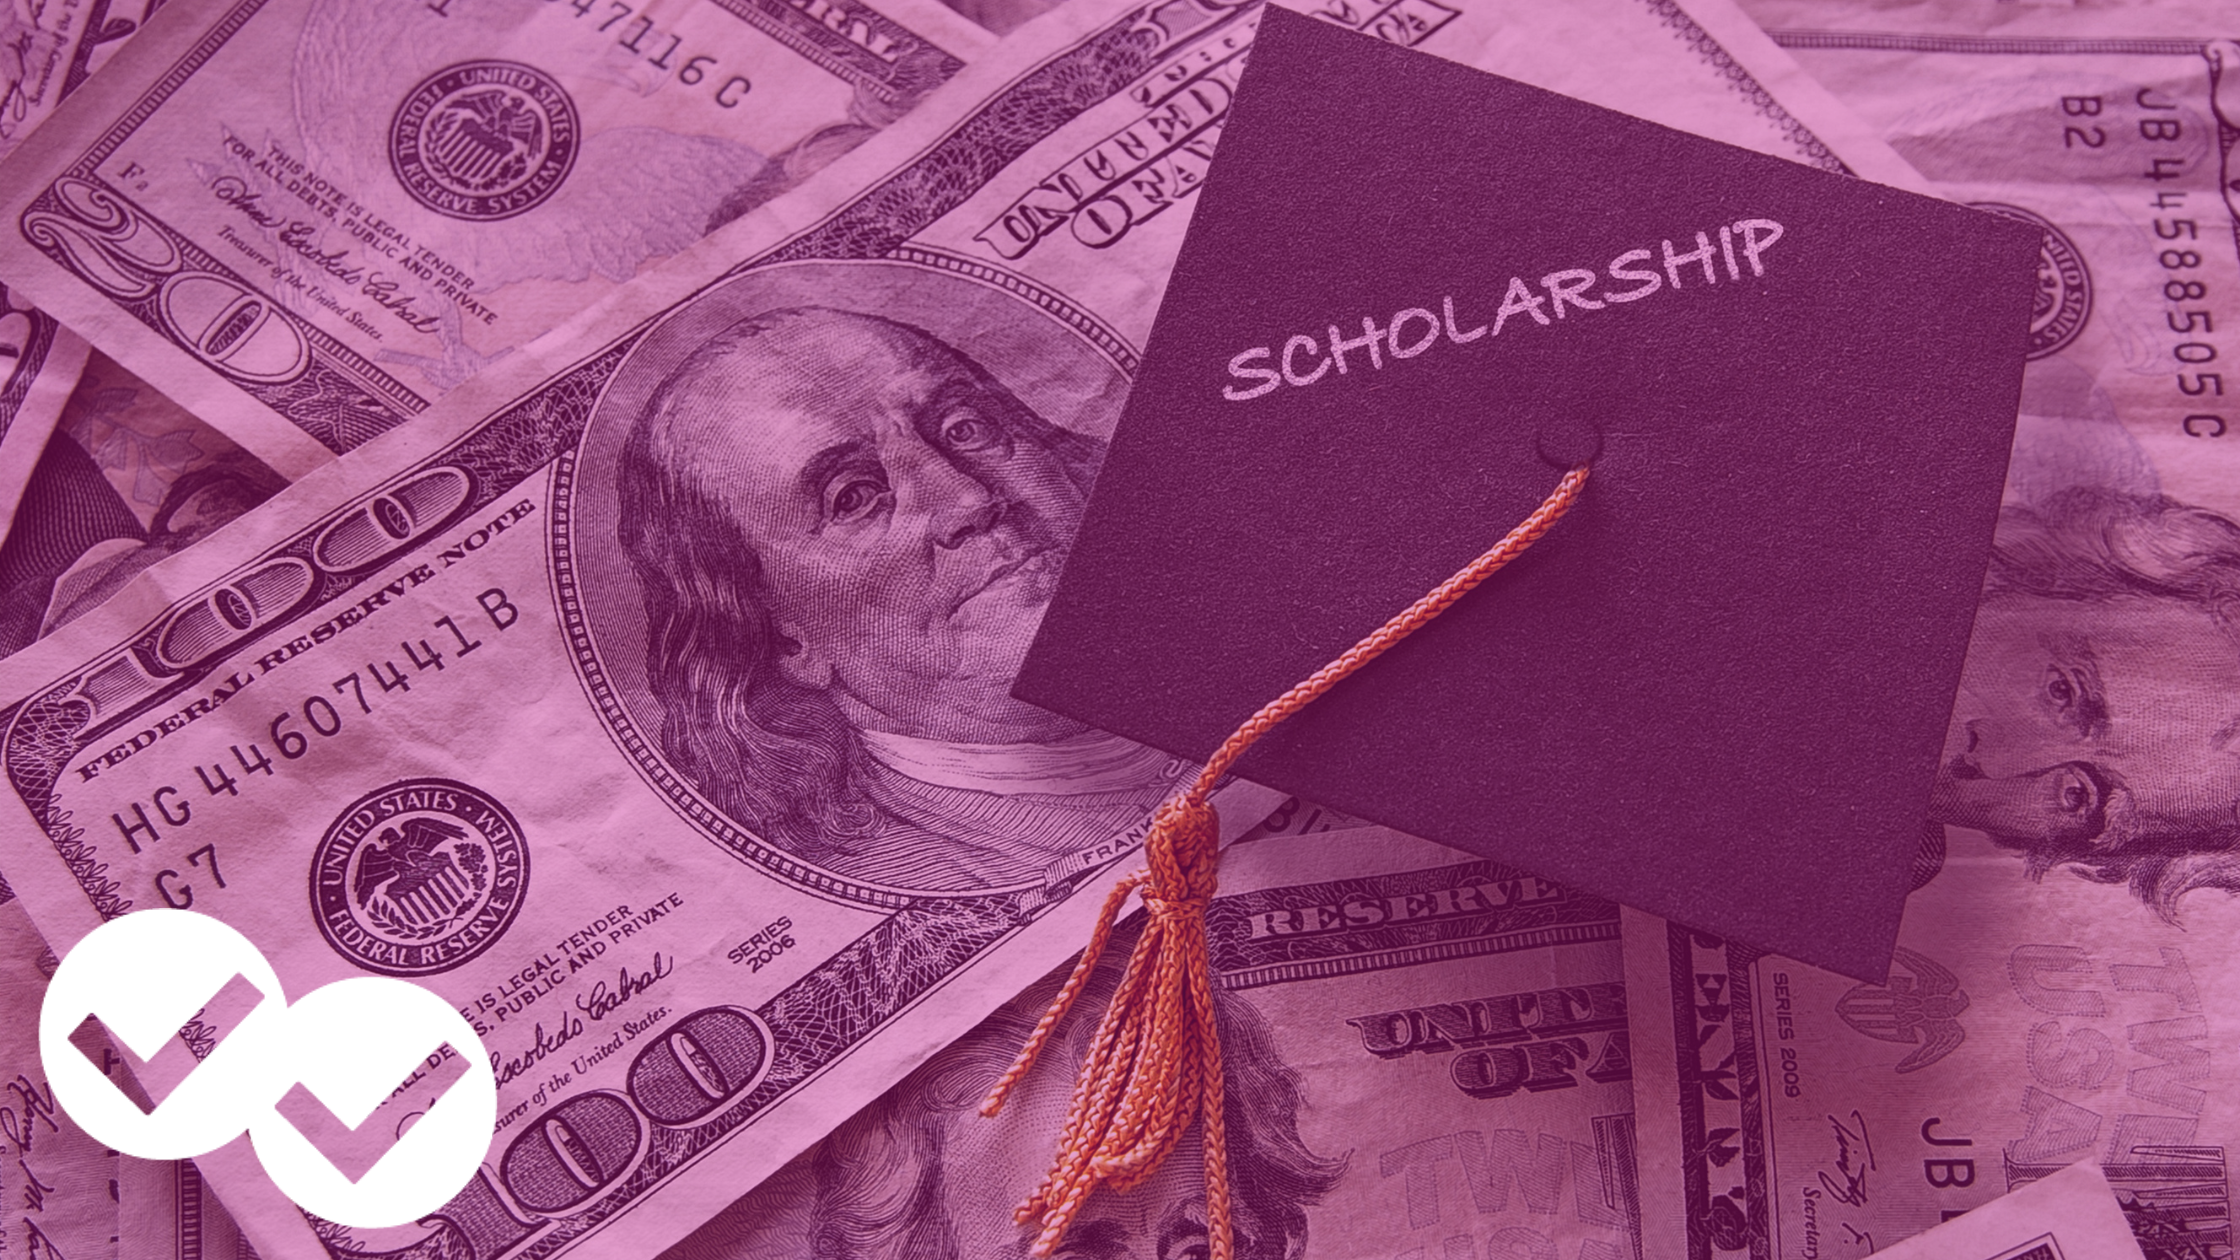 Finding scholarships through the College Board